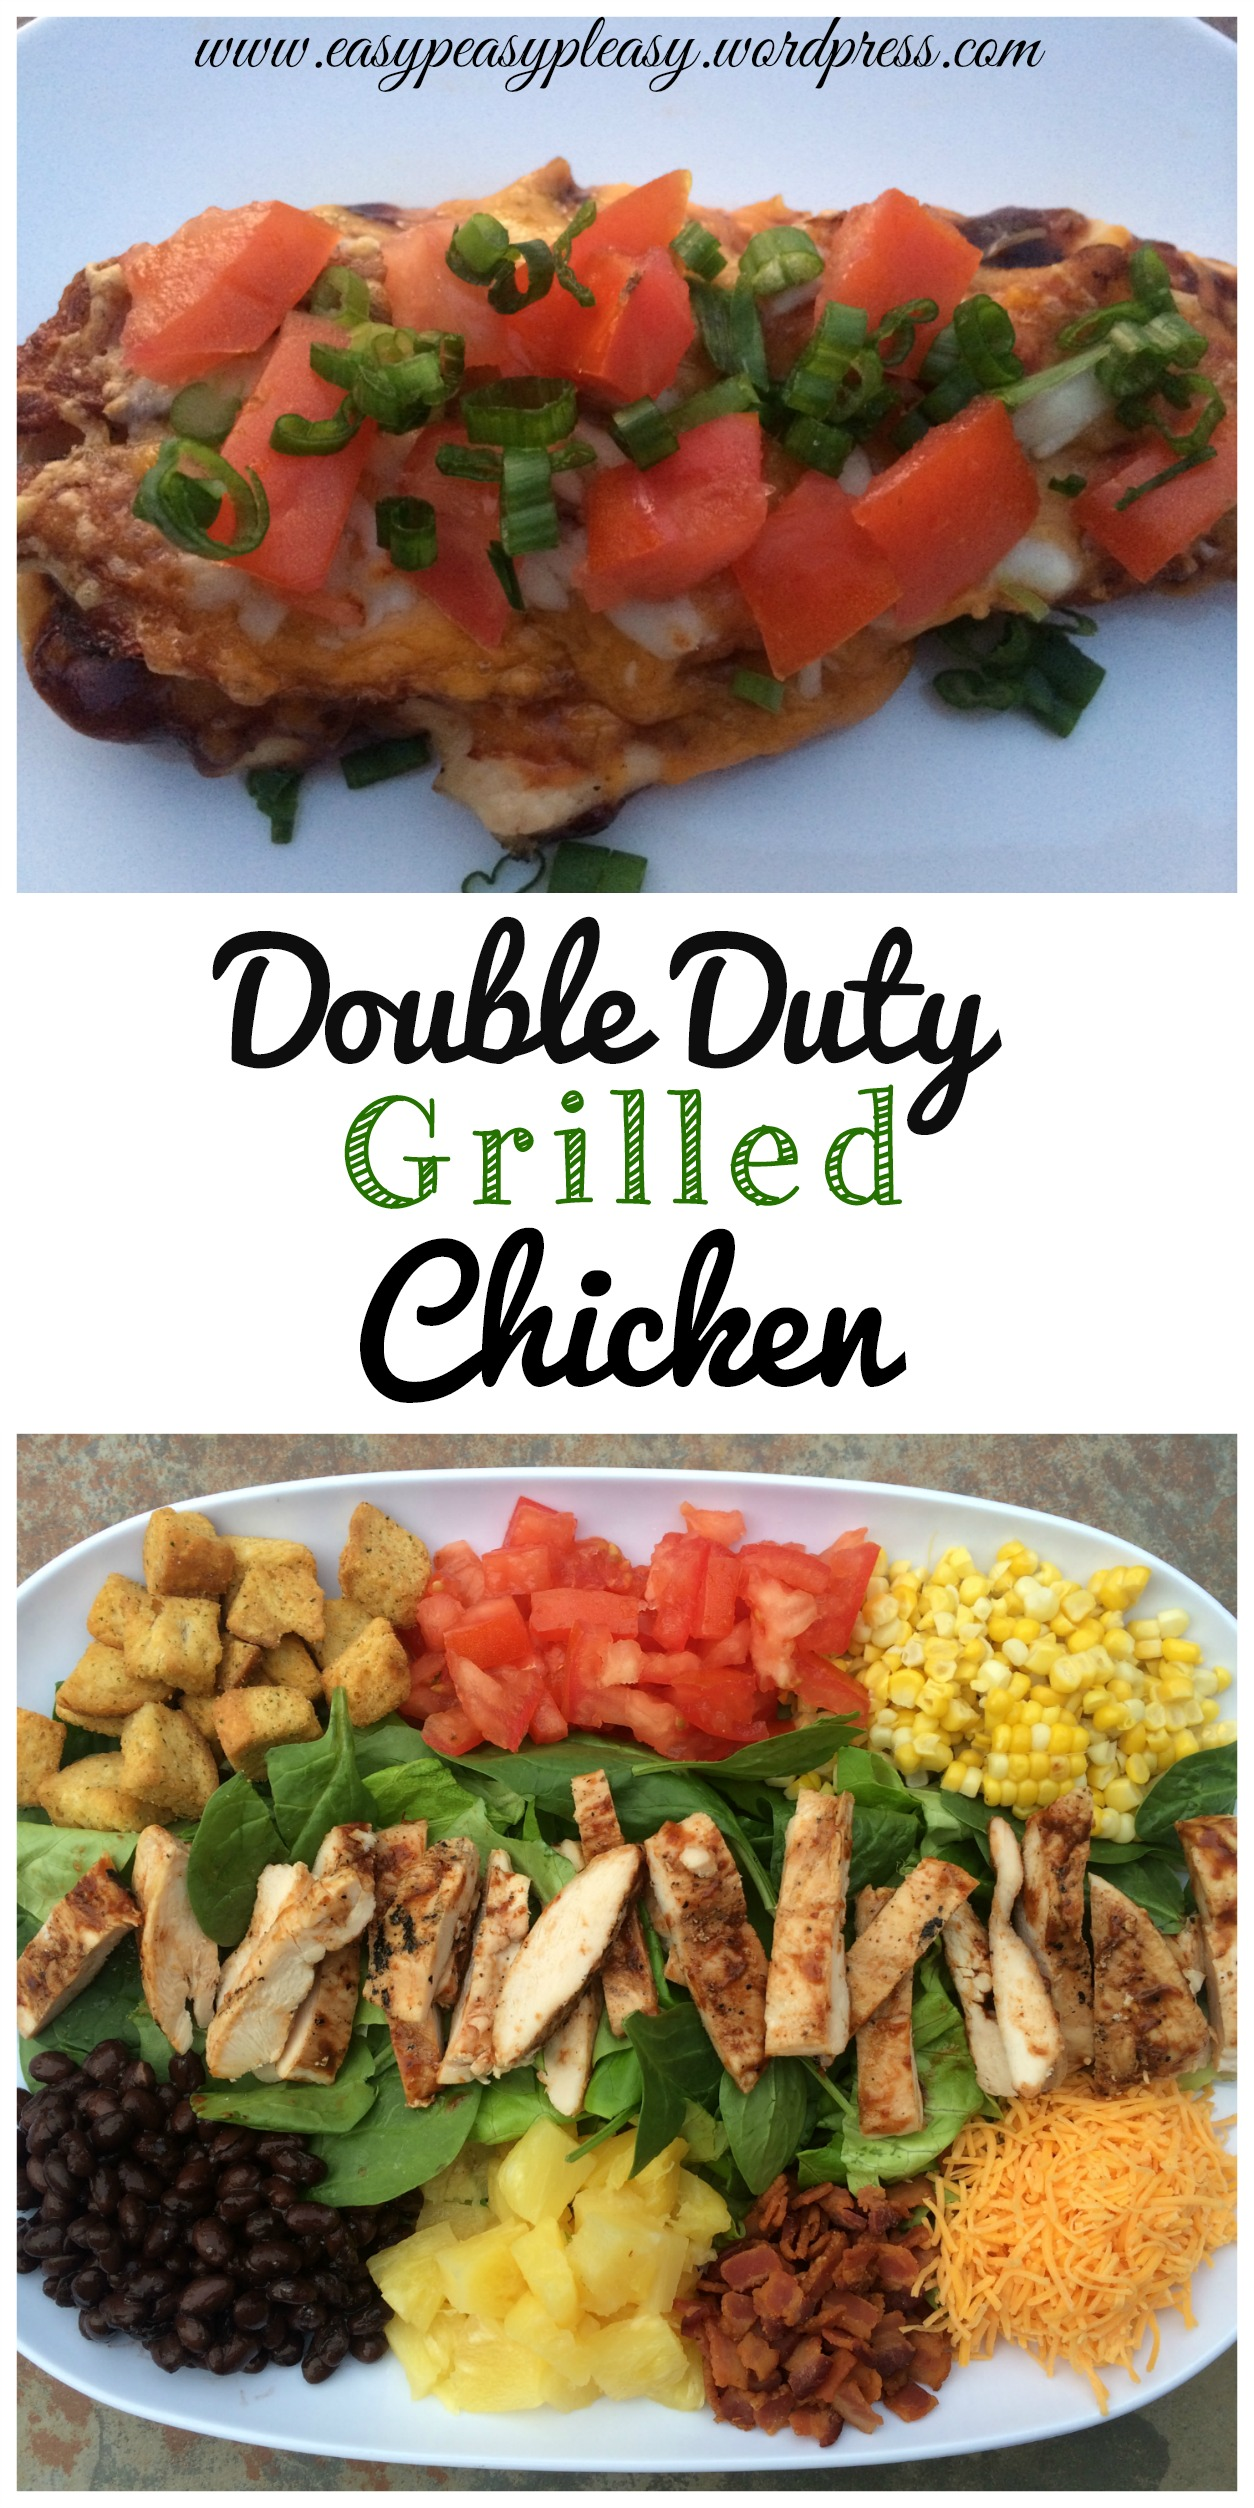 Double Duty Grilled Chicken Recipes at https://easypeasypleasy.com